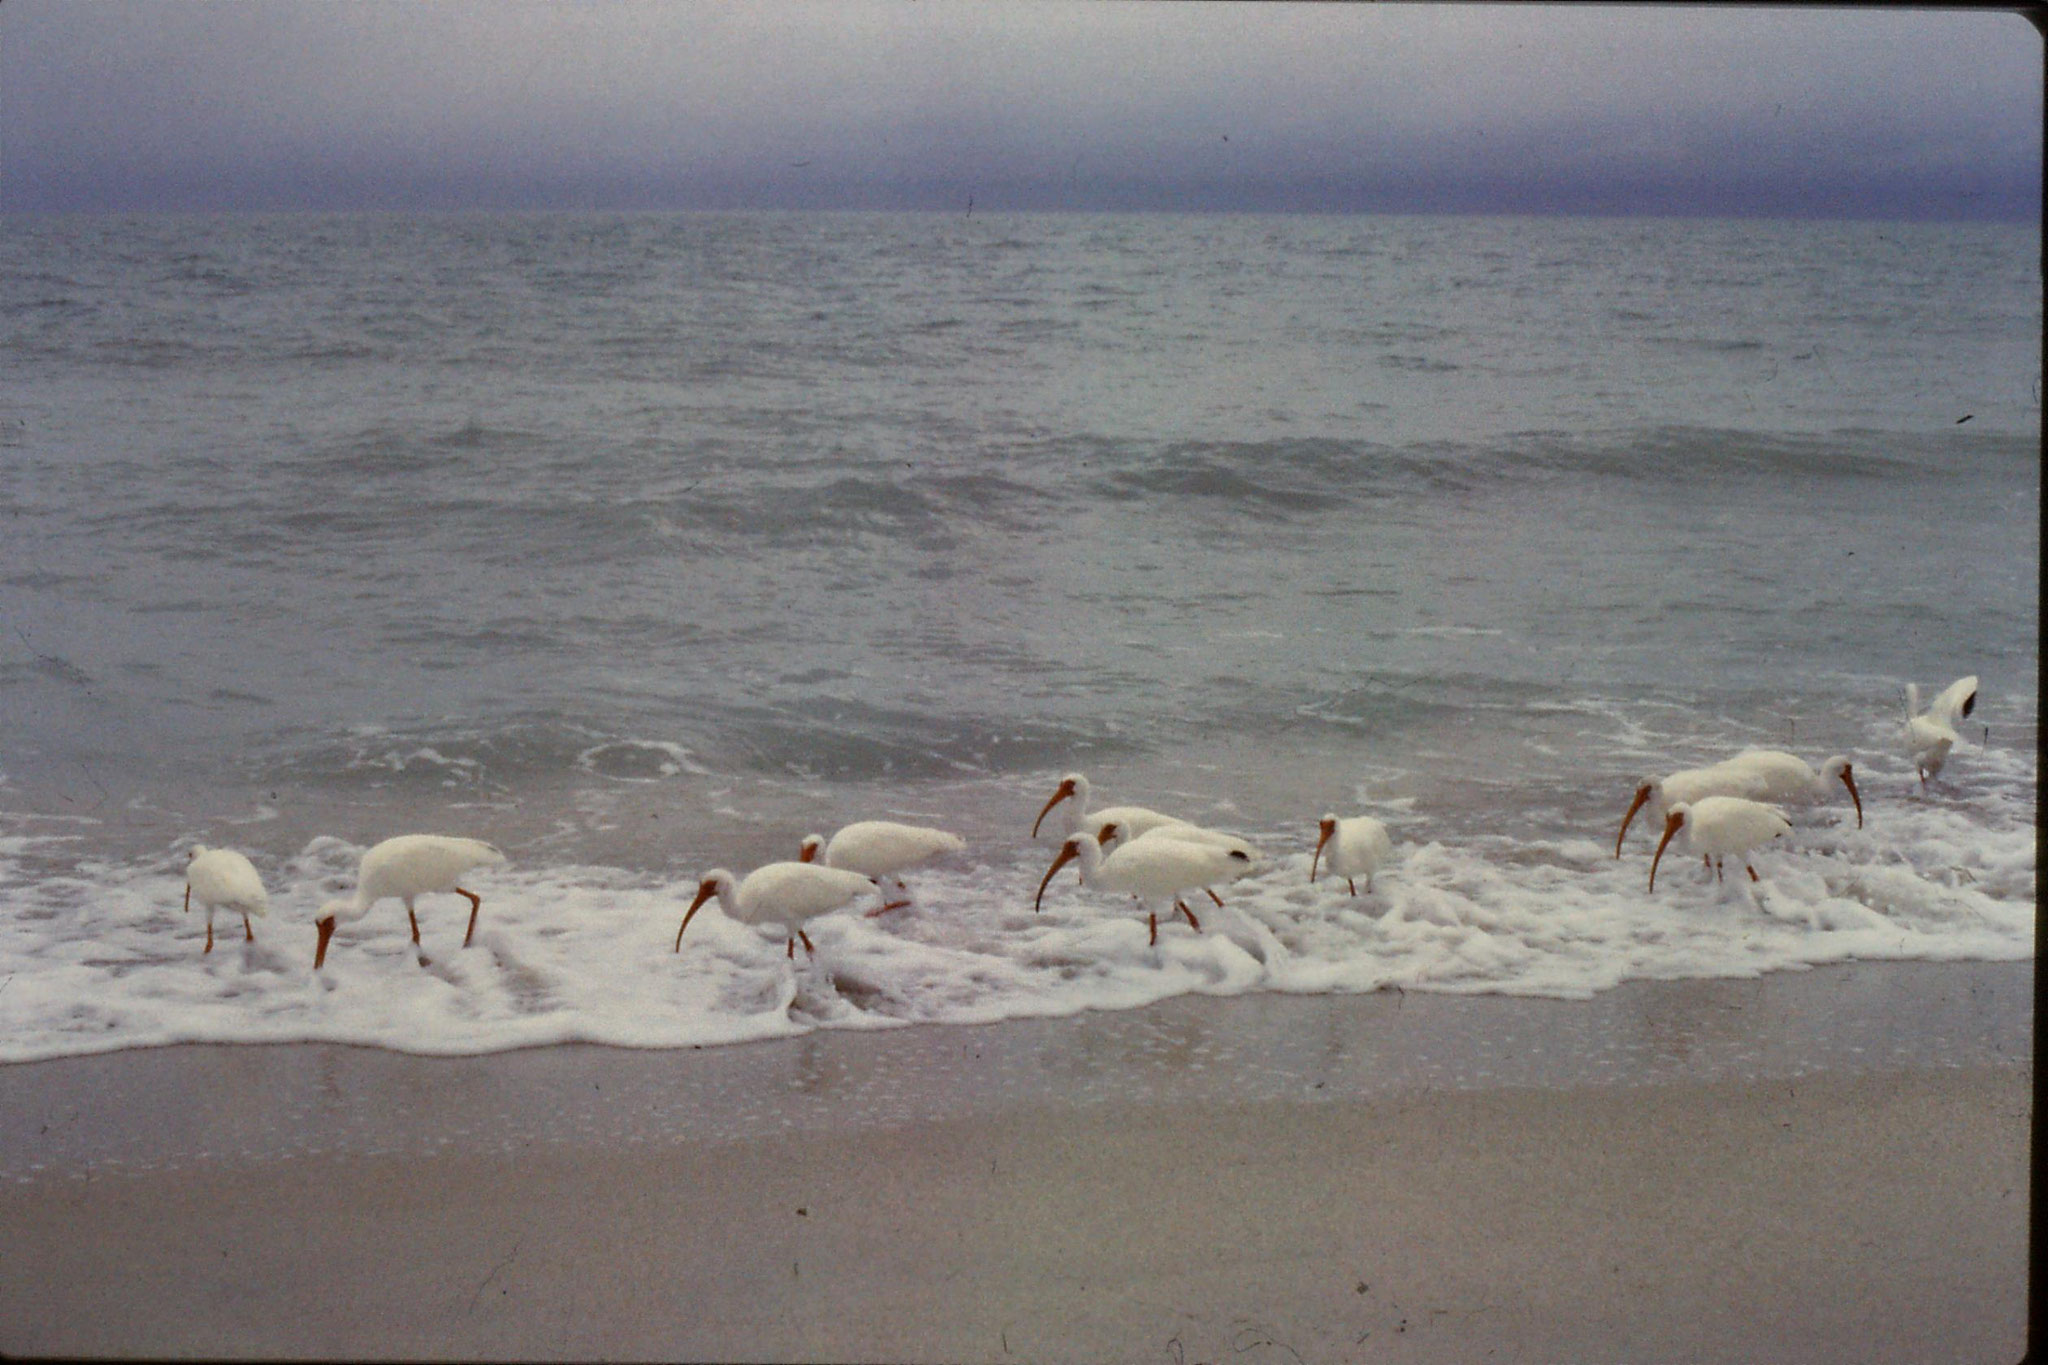 25/2/1991: 1: Sanibel Florida white ibises